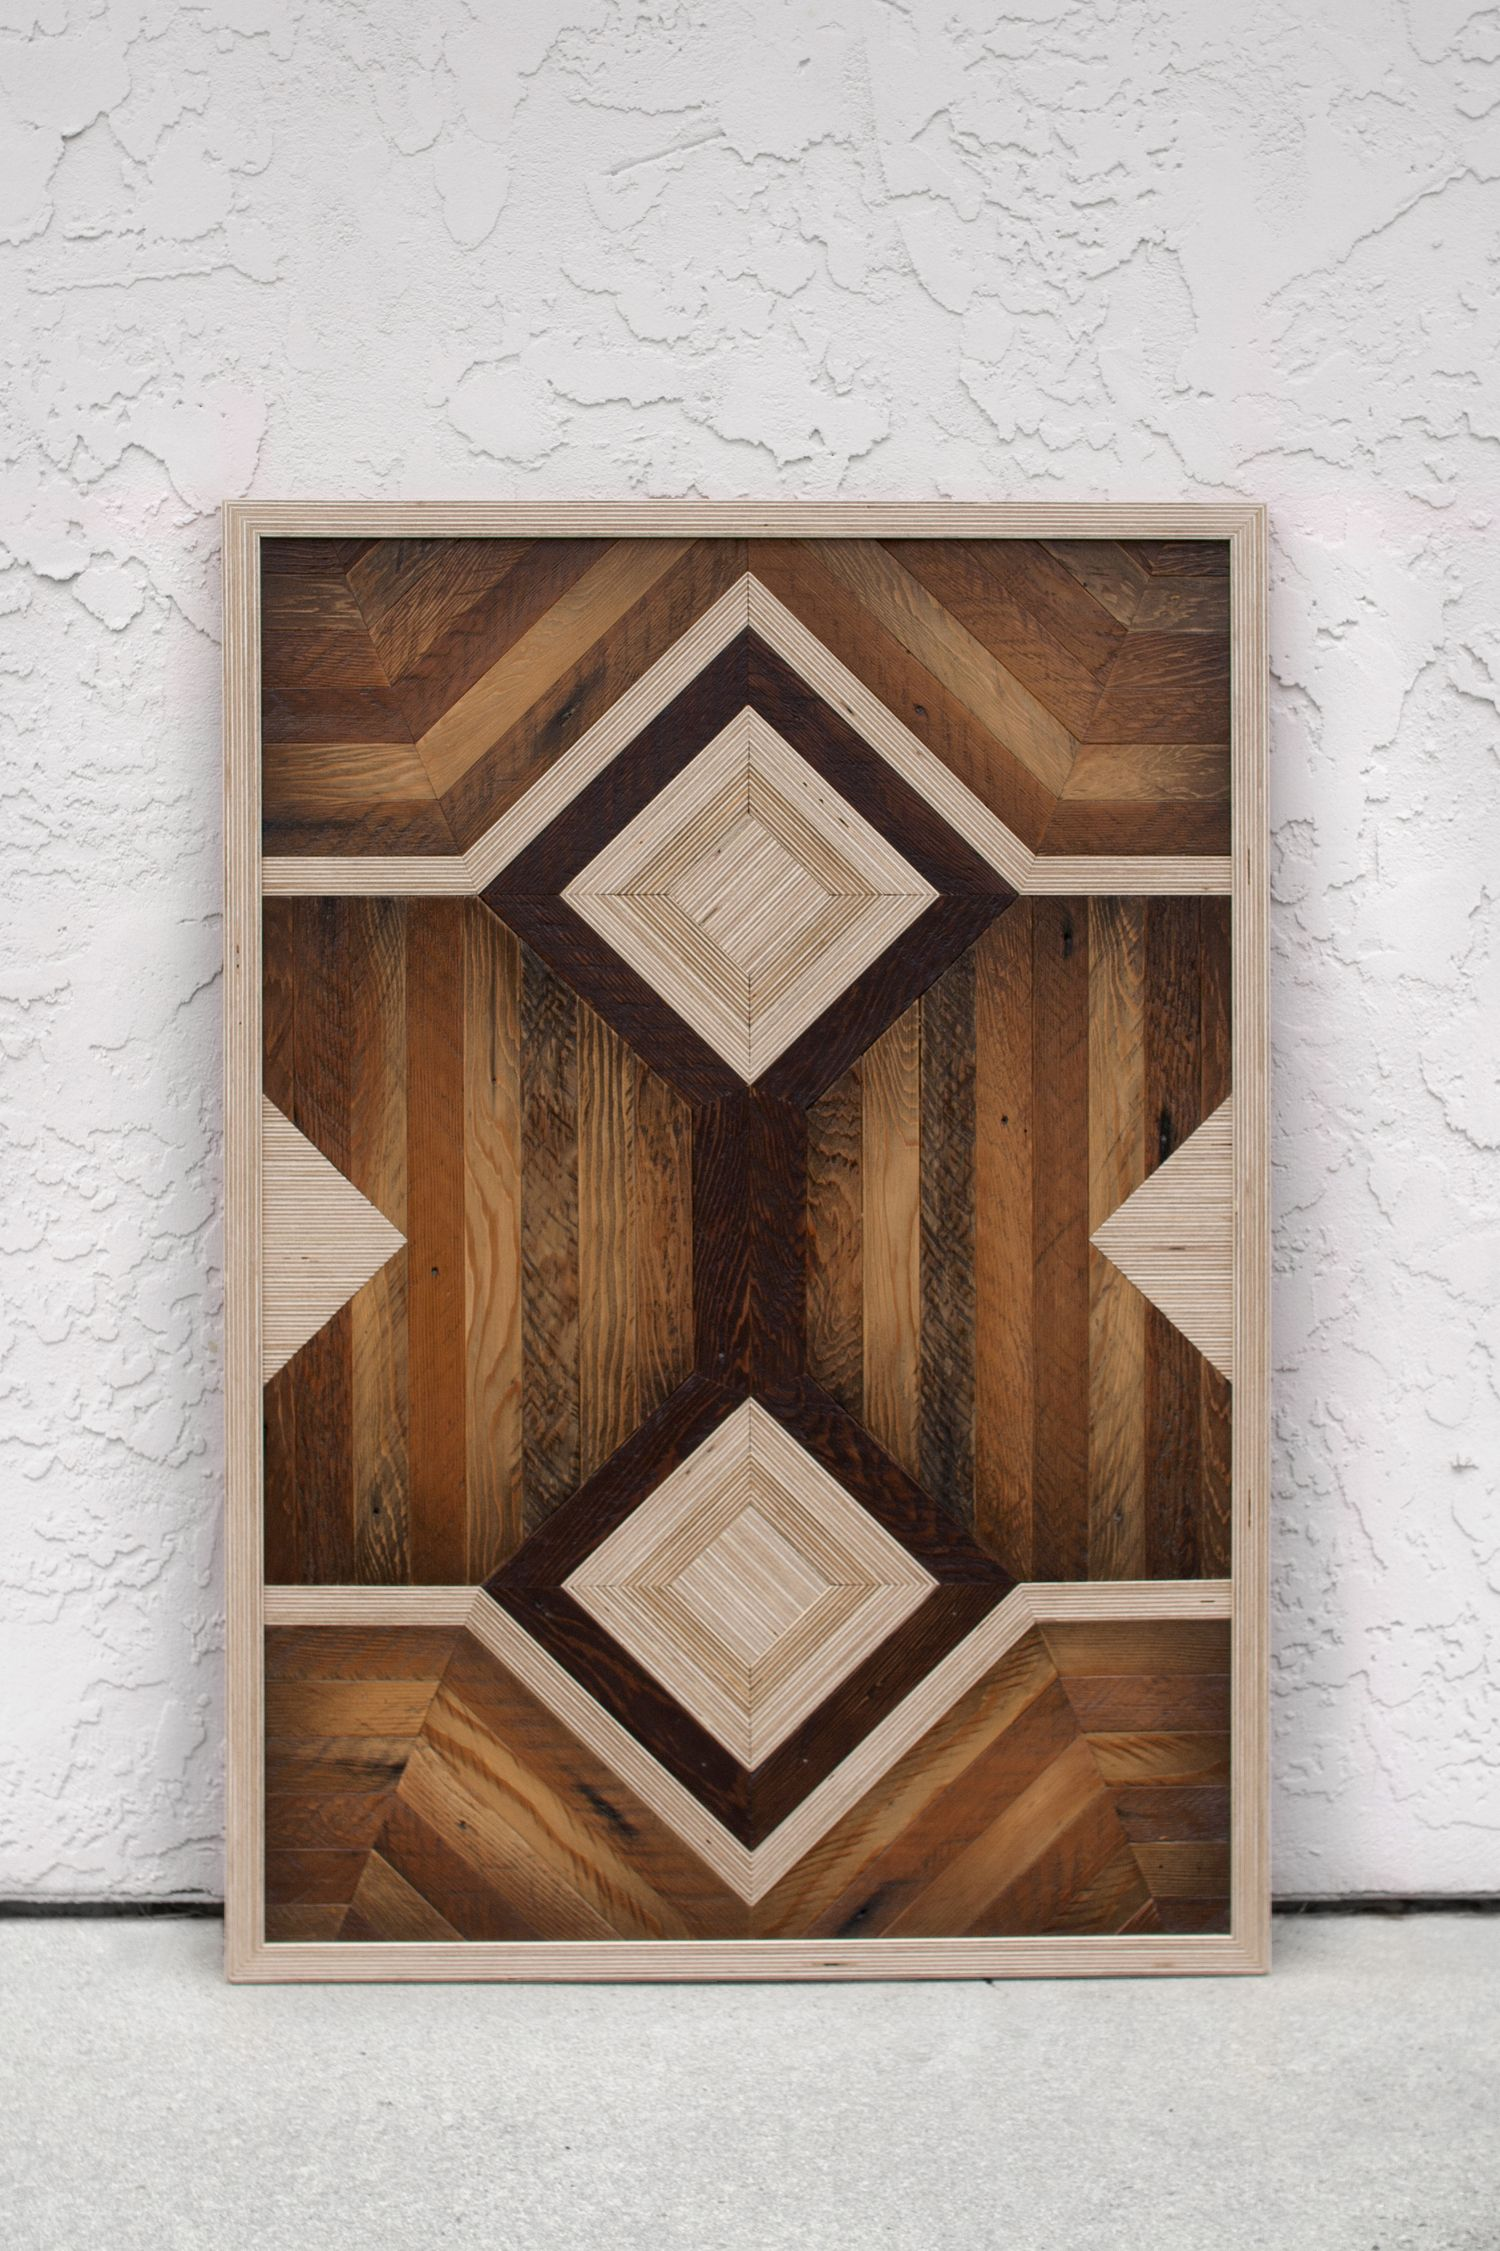 Reclaimed Wood Projects Decorative Wall Panel Made Of Reclaimed Wood Lath And Baltic